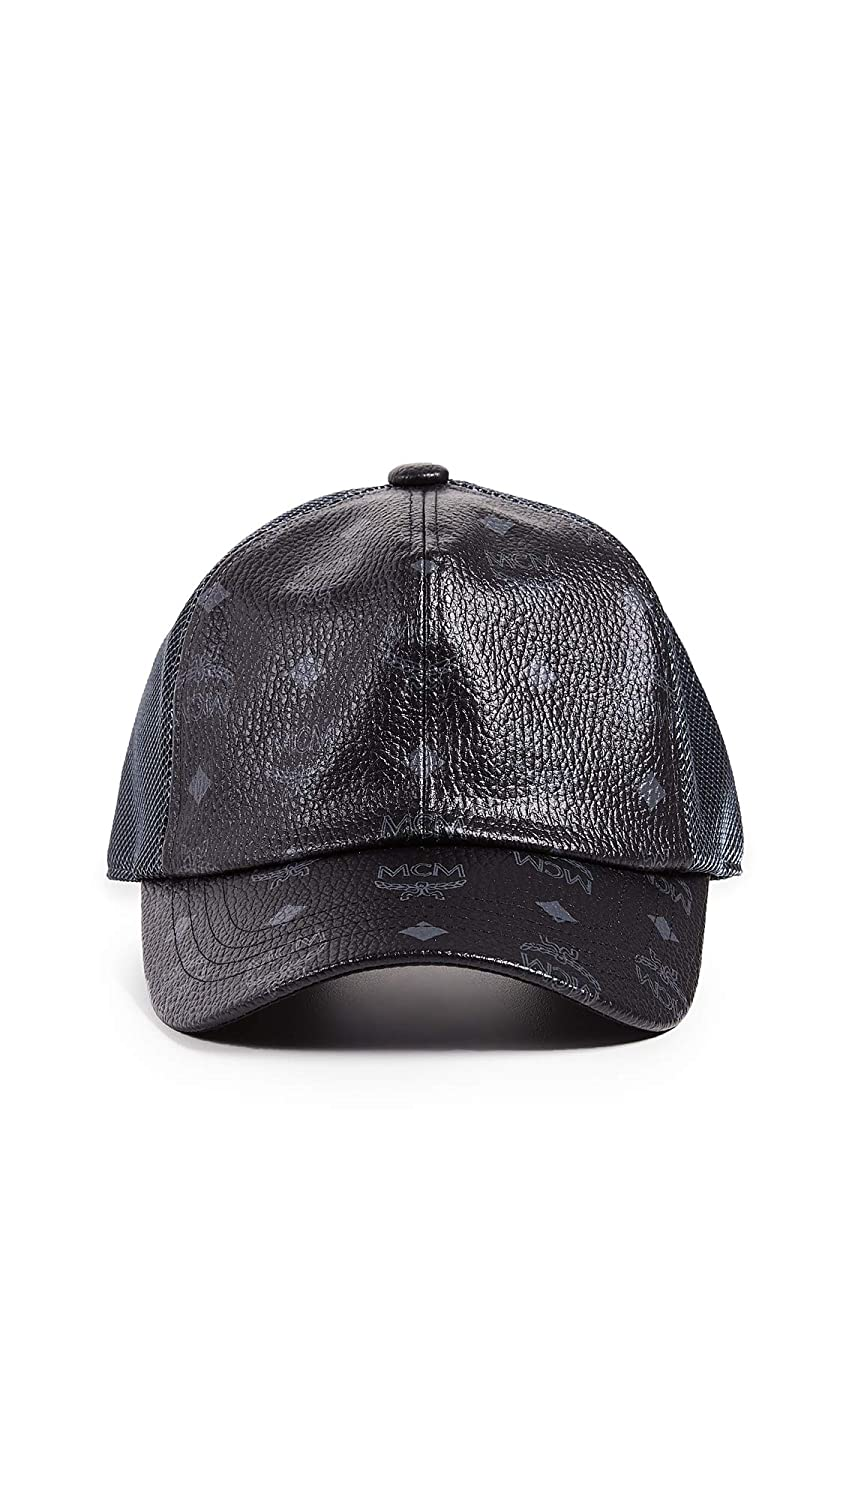 MCM Men s Collection Cap f4e08e2fb2bd